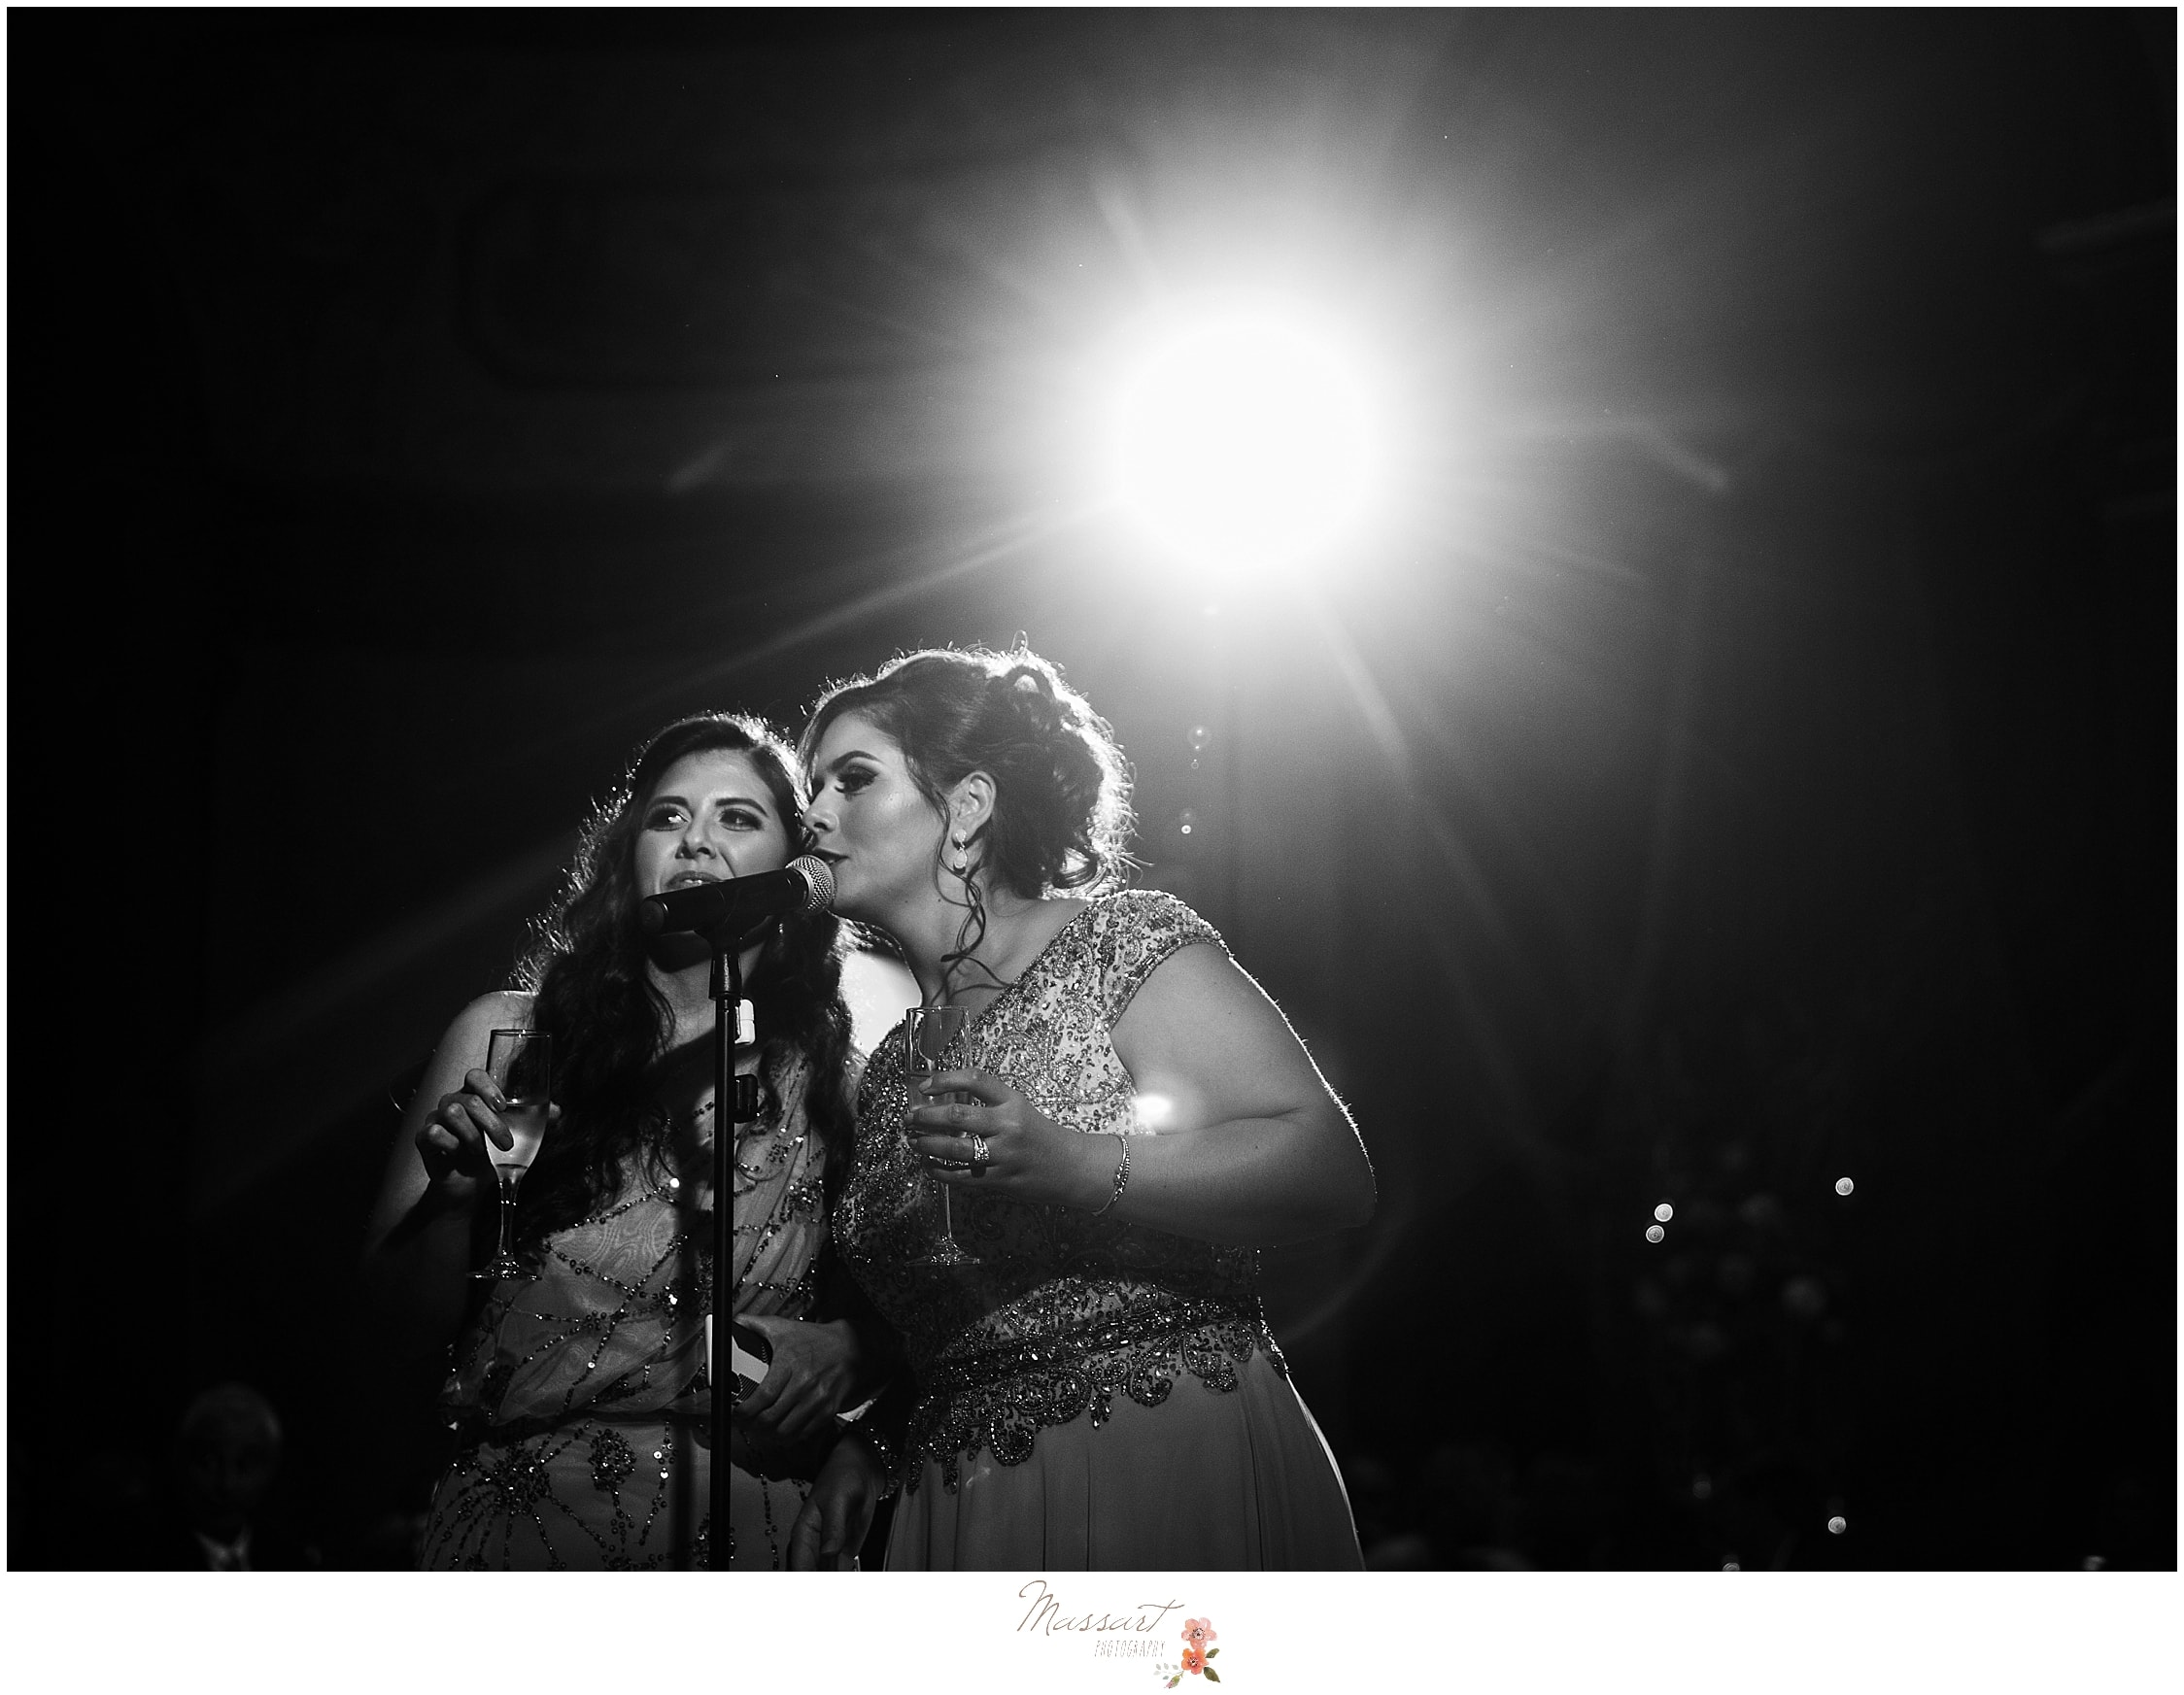 wedding singers perform during wedding reception at the Biltmore photographed by RI, MA, CT wedding photographers Massart Photography